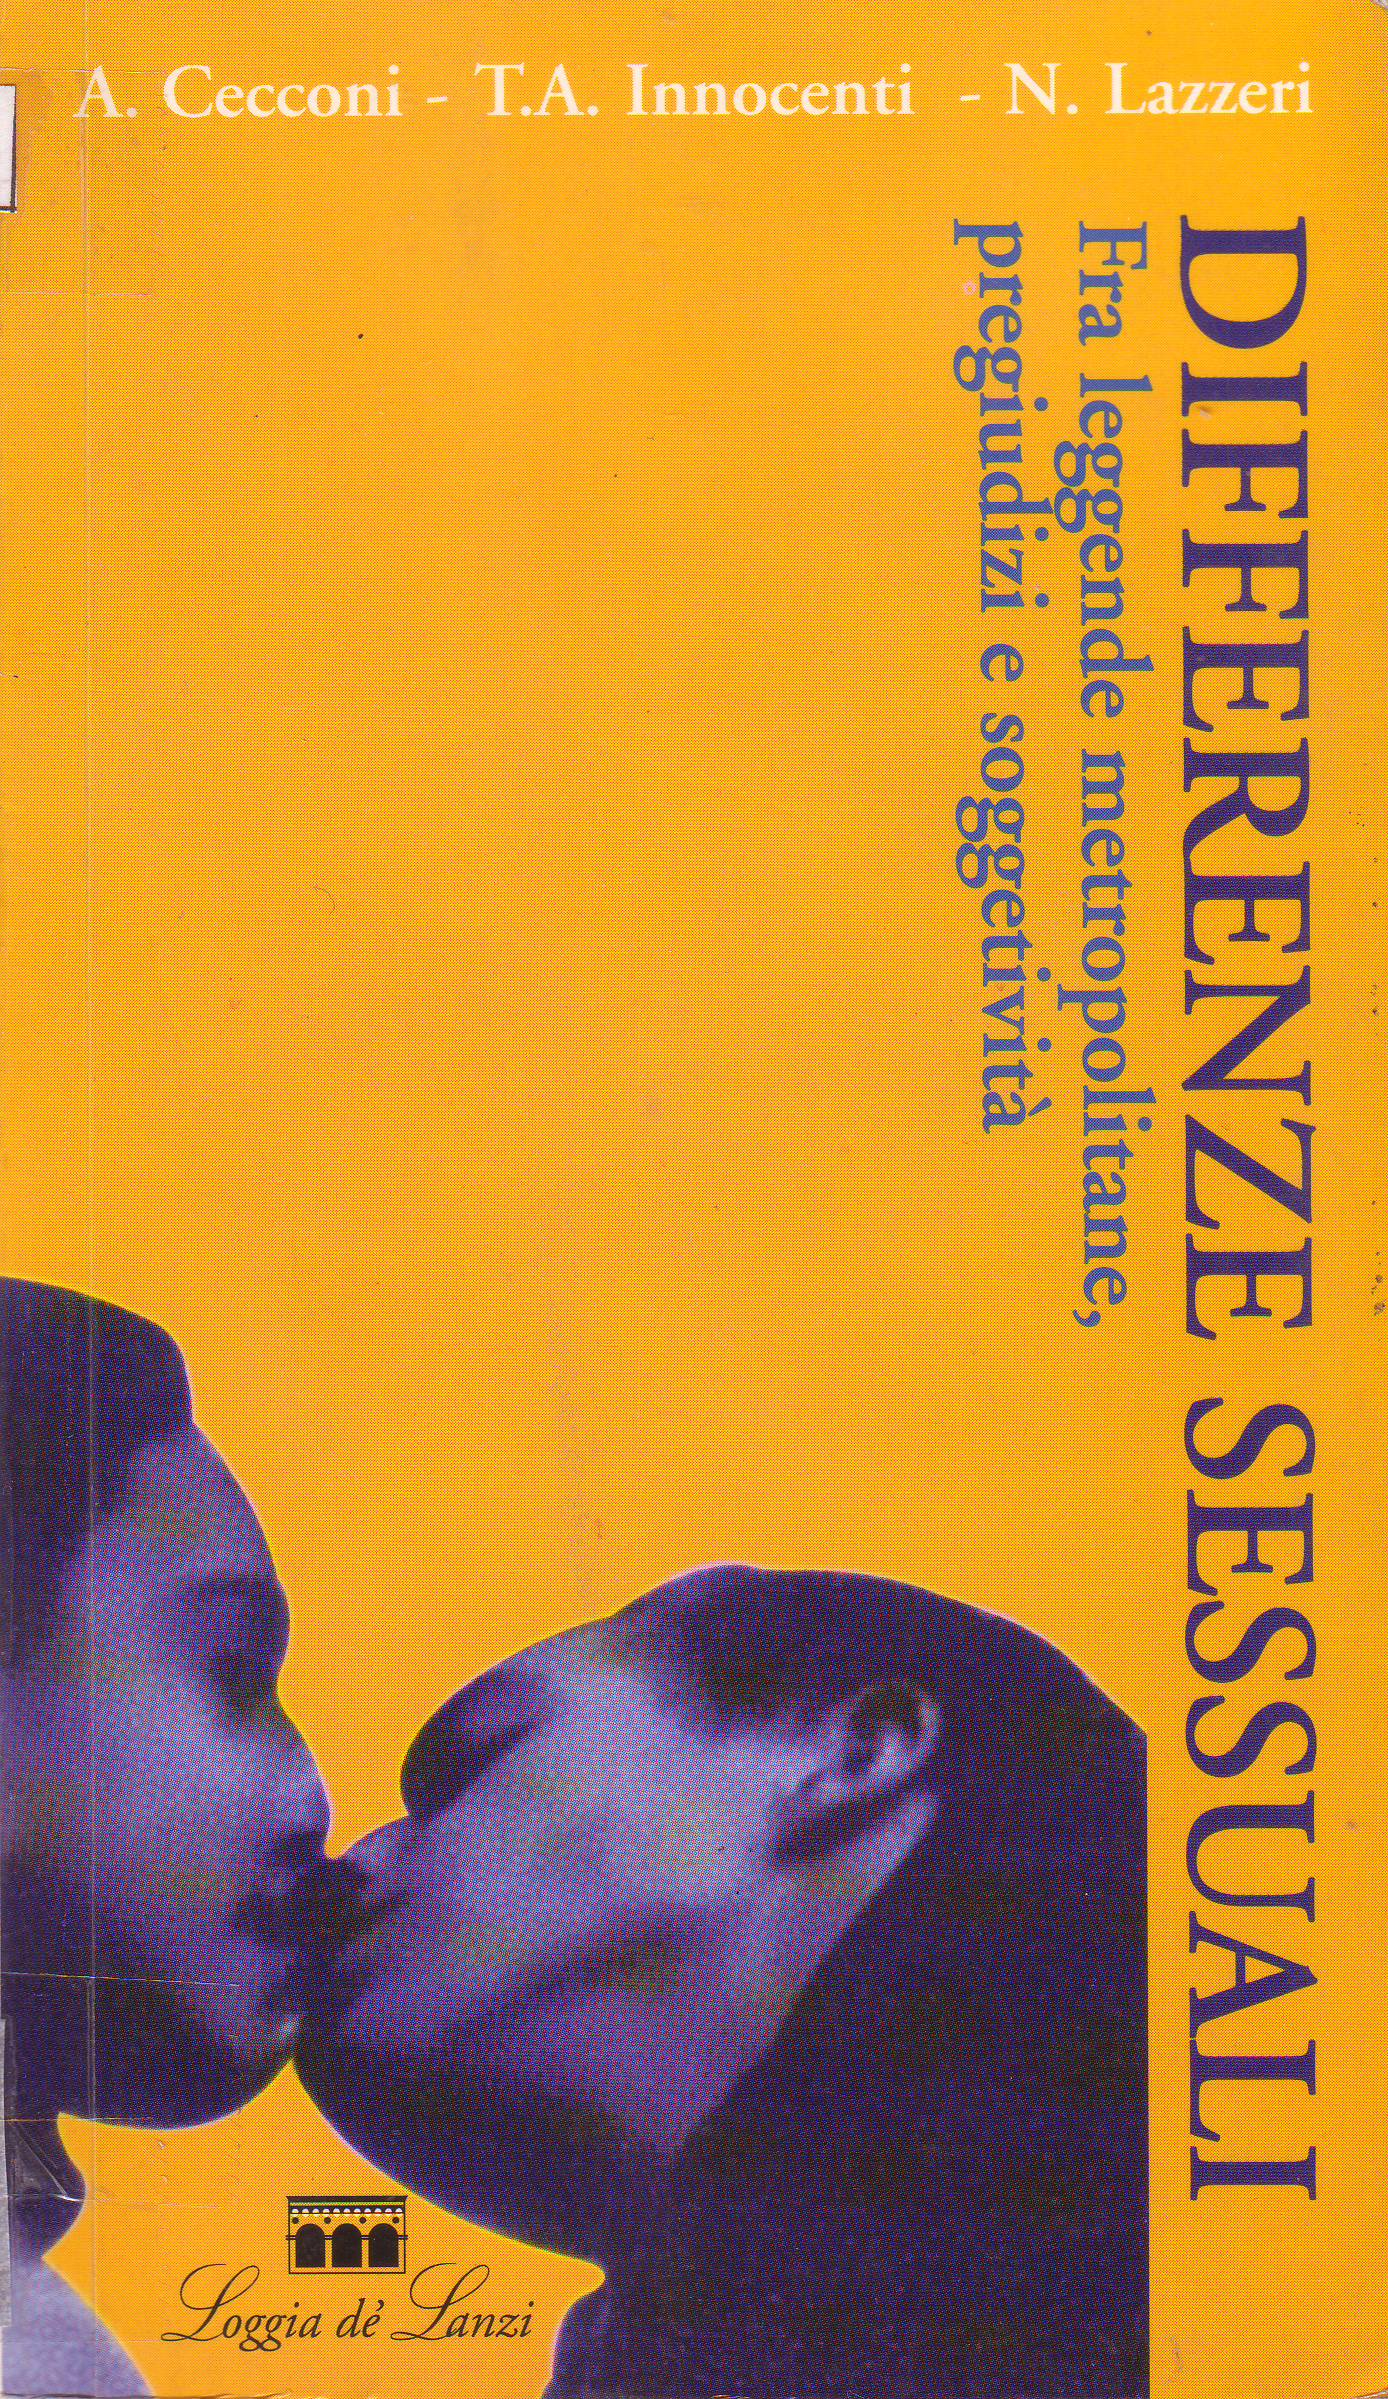 Copertina del libro Differenze sessuali